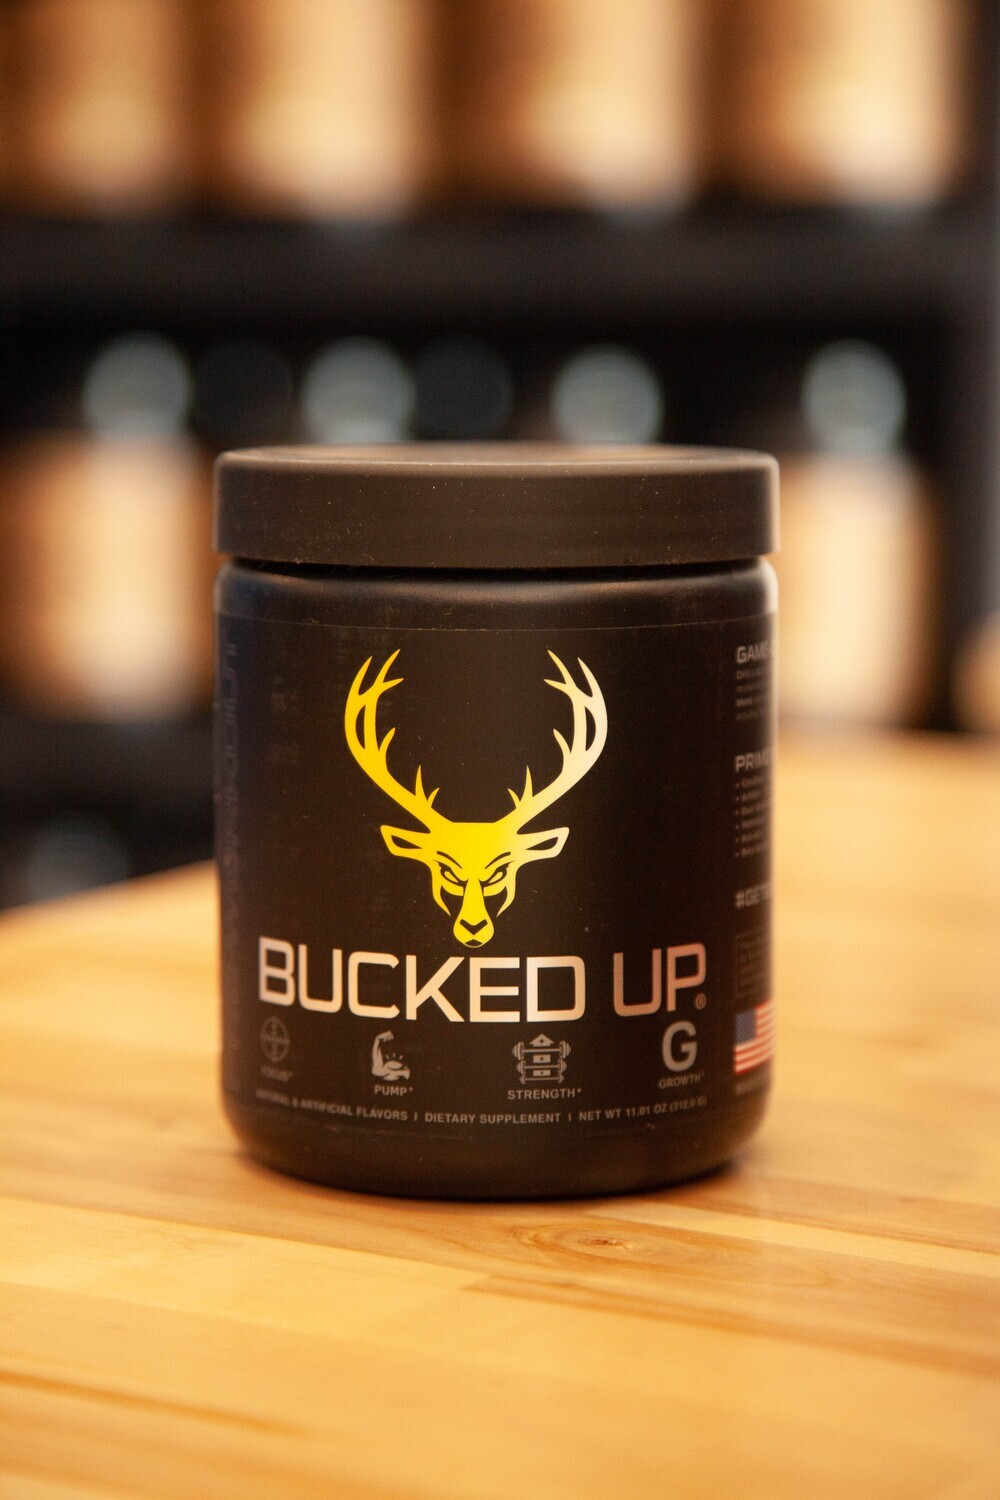 Bucked Up (Swole Whip)